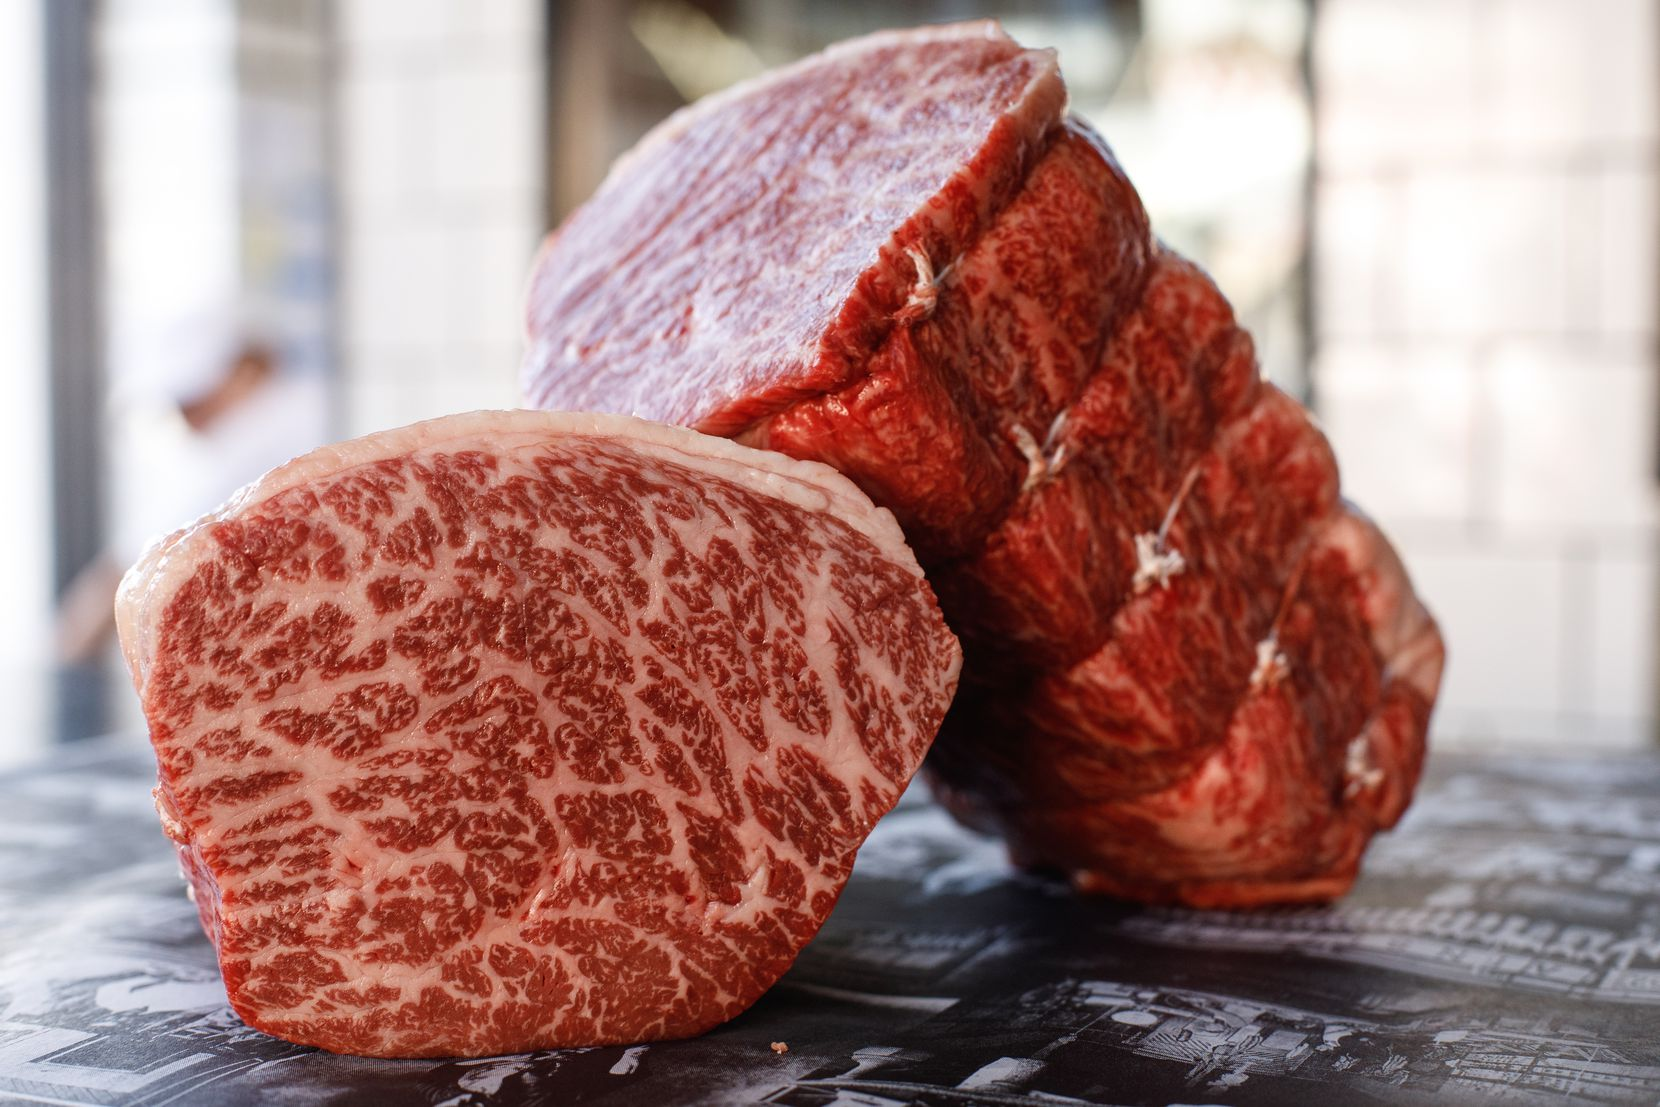 Australian Blackmore Wagyu beef roasts in the butcher shop at Gwen, Curtis Stone's restaurant in Los Angeles.